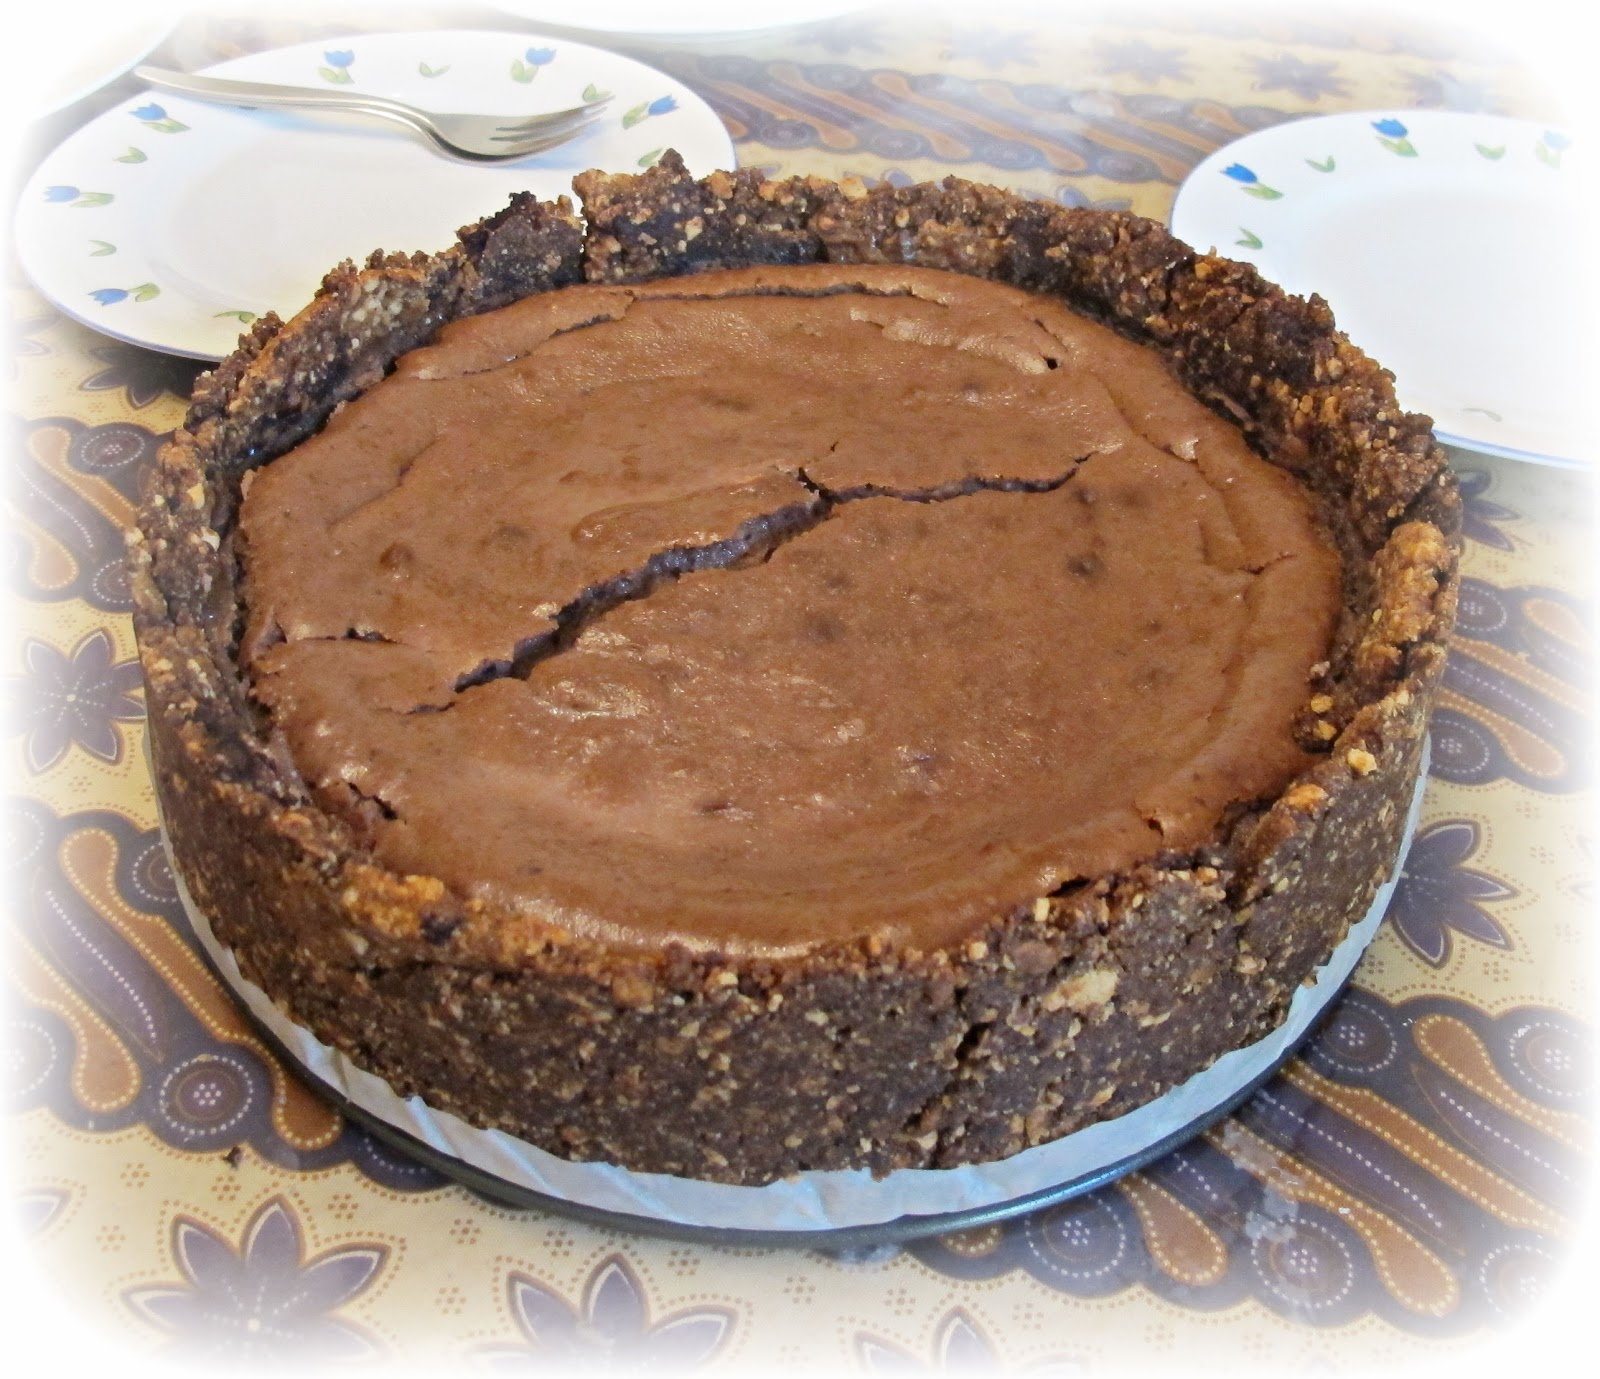 image baked chocolate cheesecake